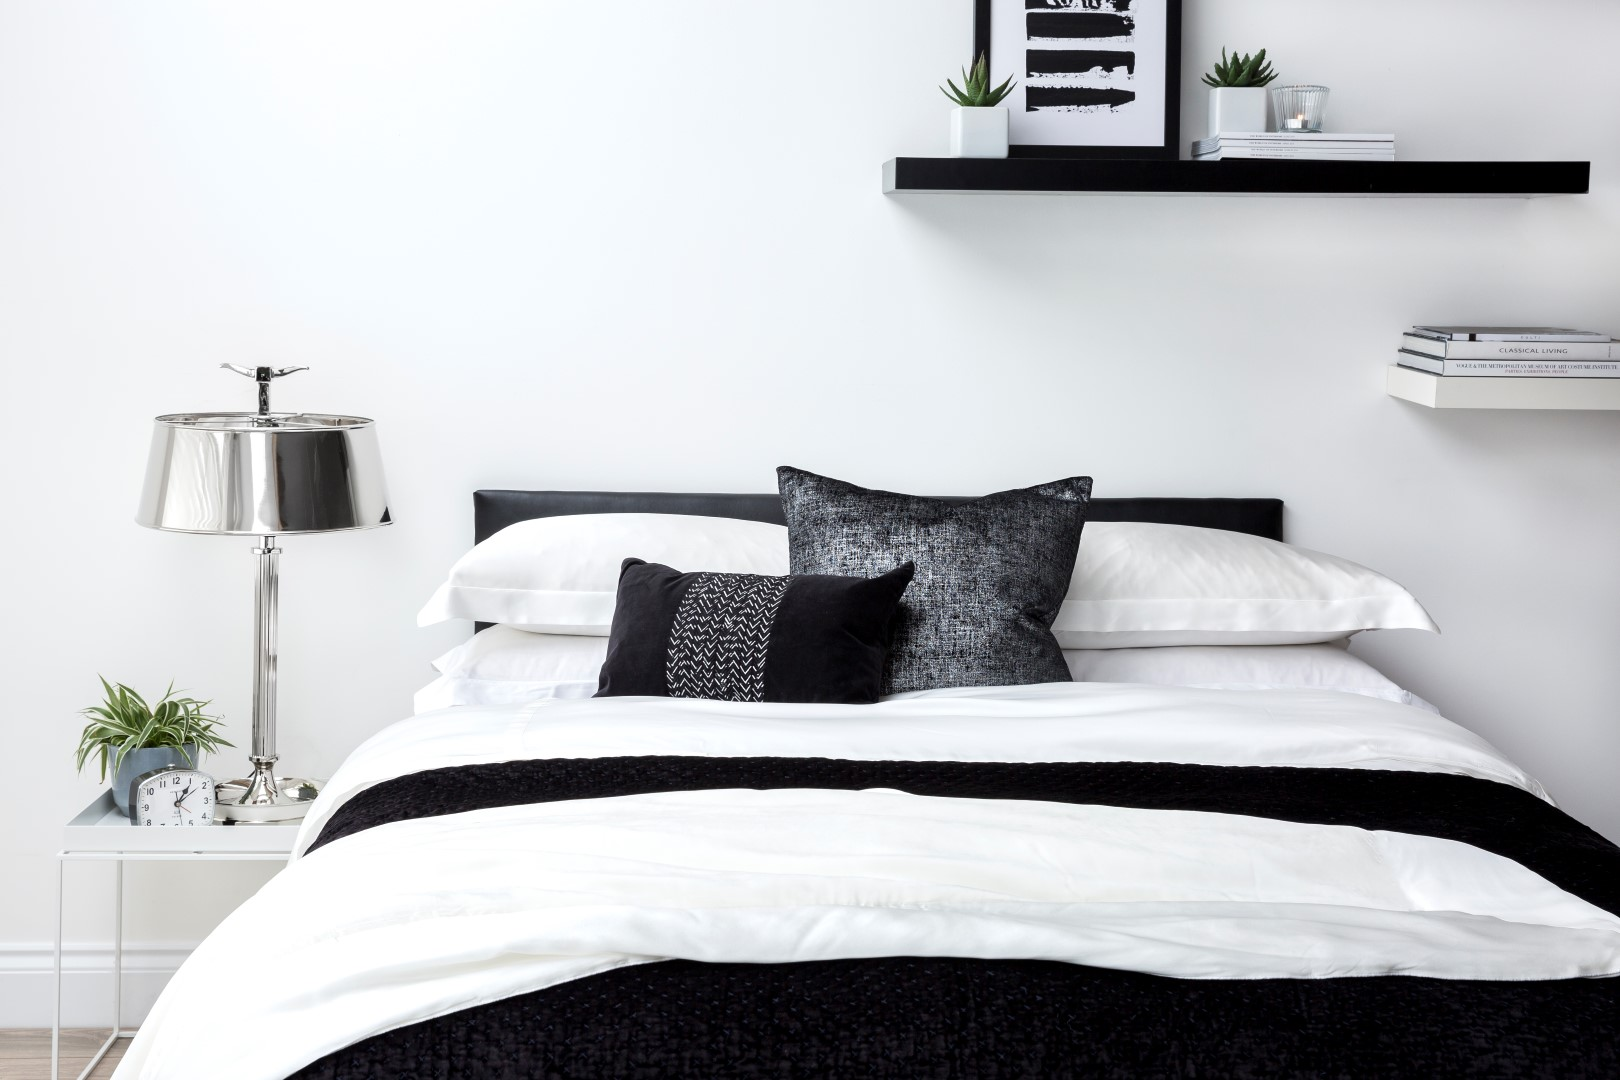 Bedroom Decorating Ideas: 20 Must-See Styles for Your Bedroom